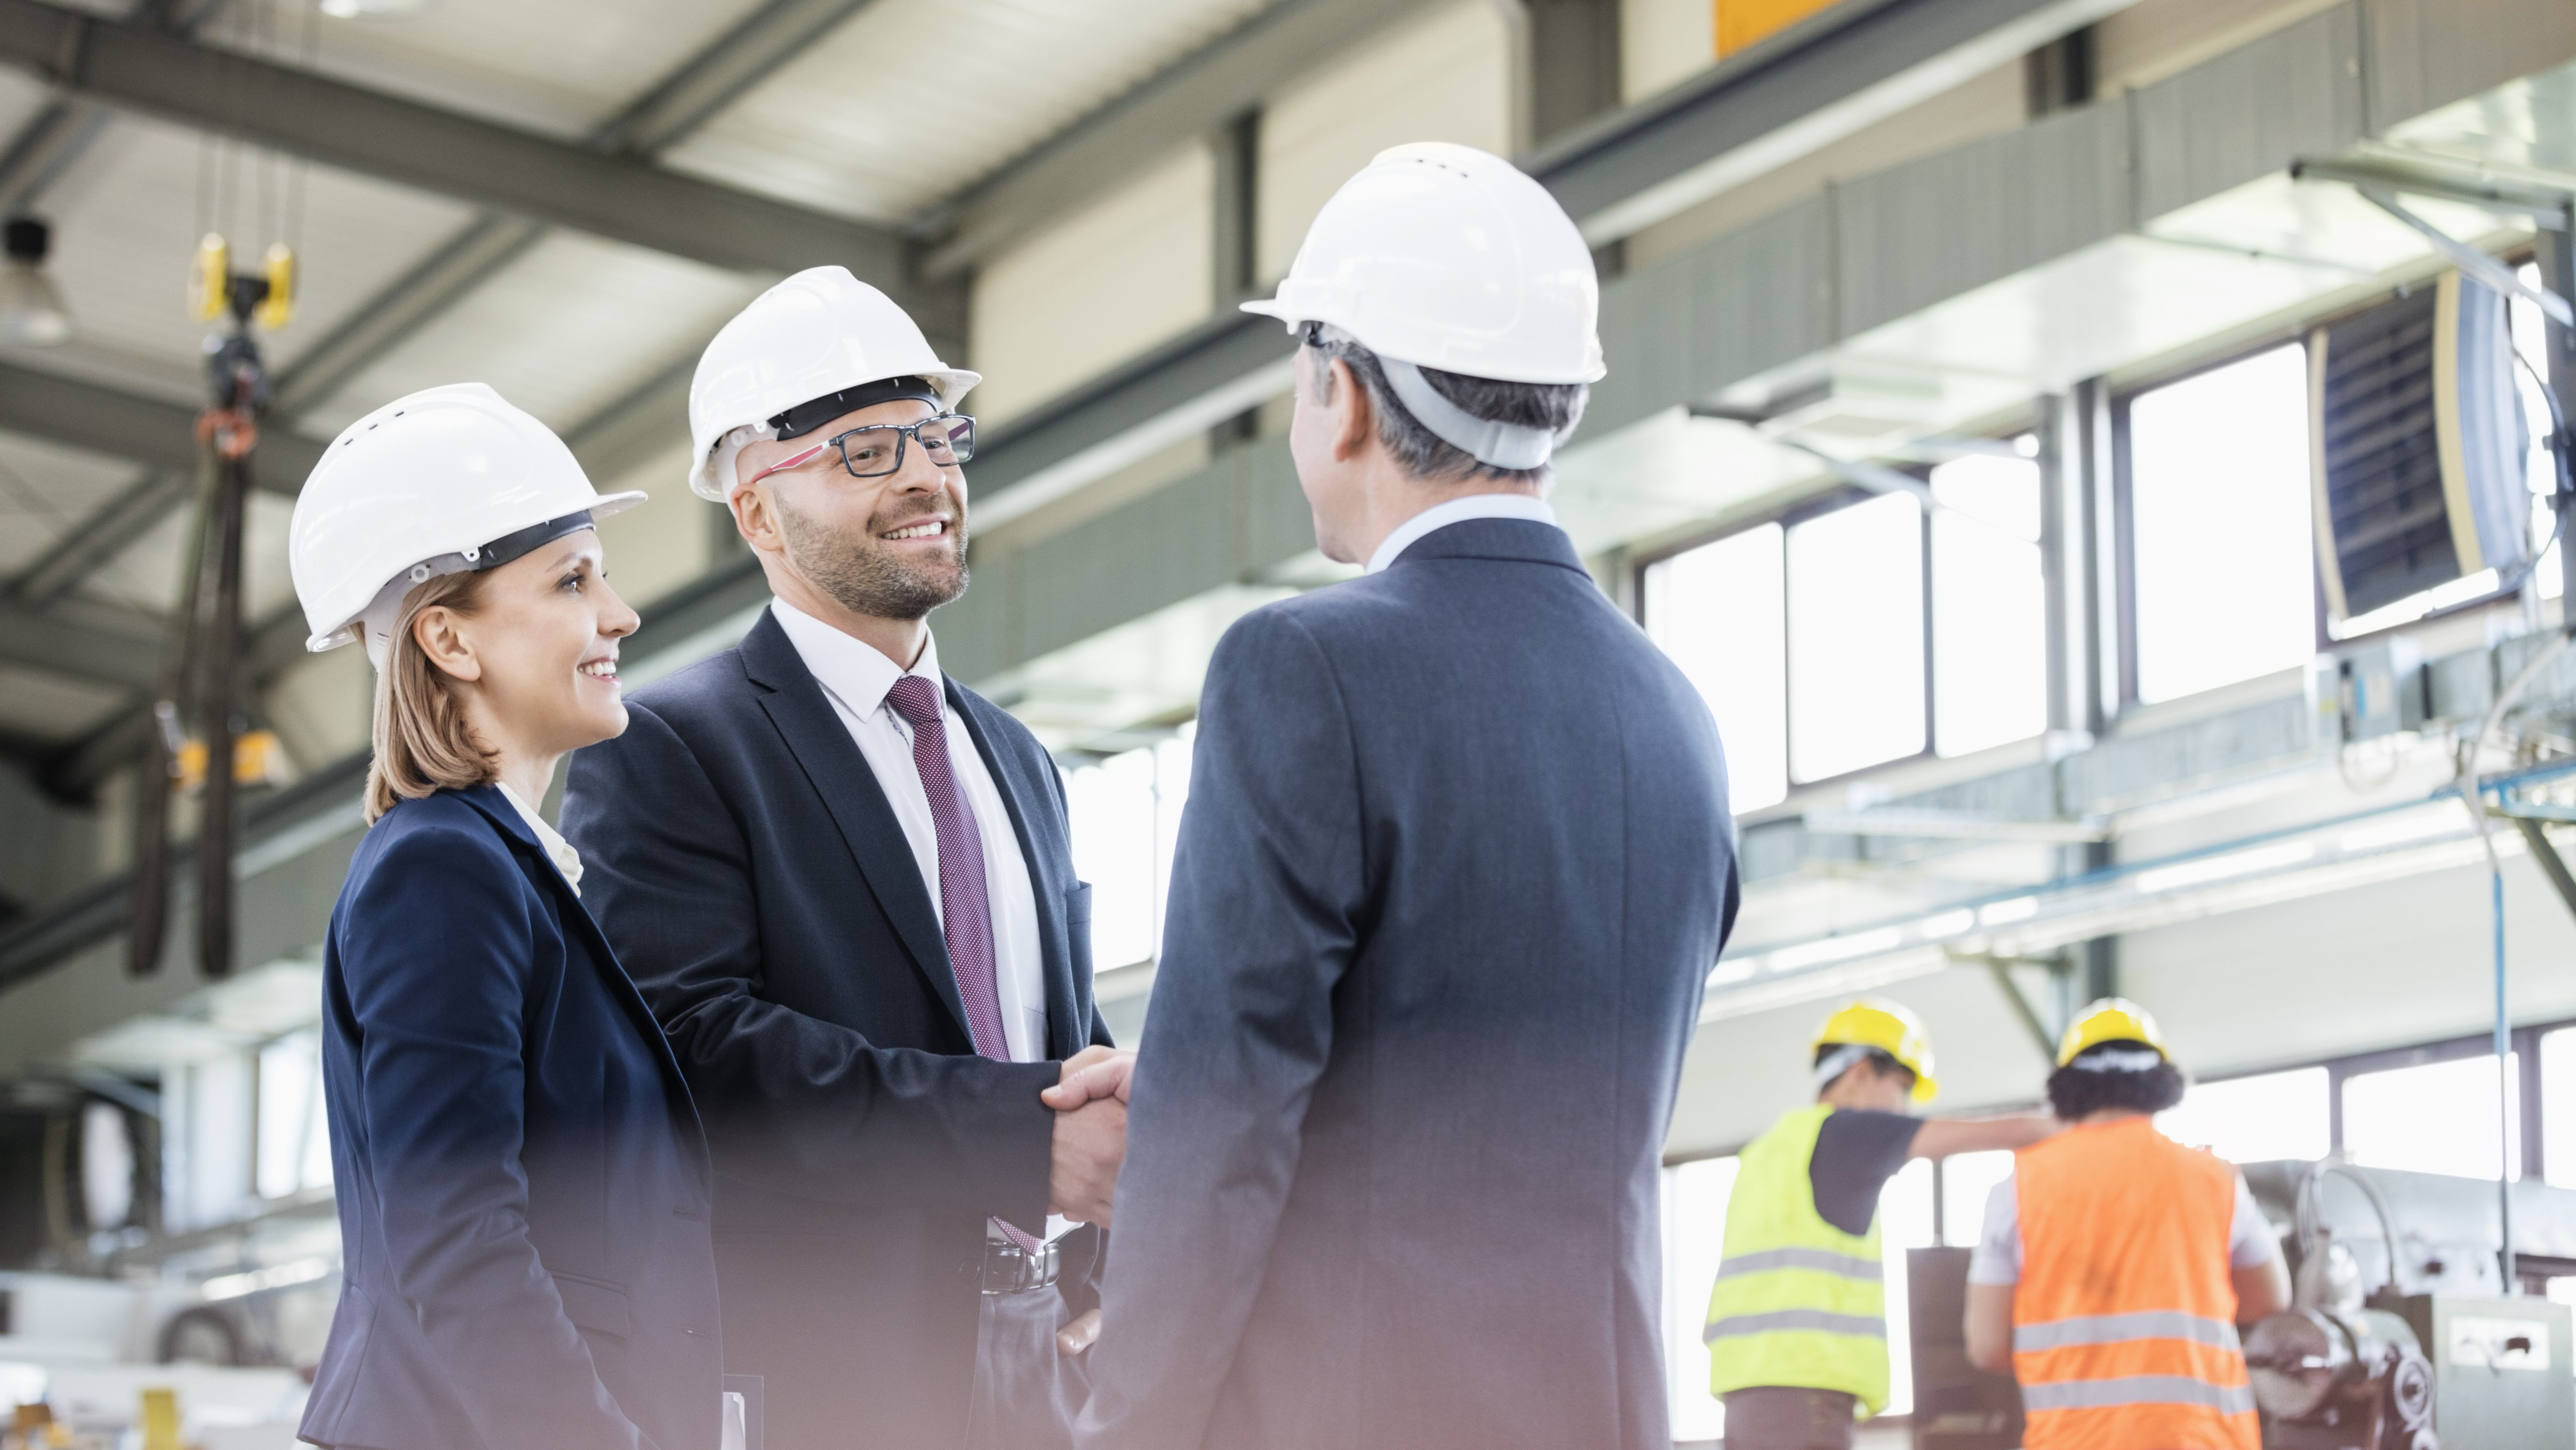 Winning Hearts And Minds to Power UK Industry